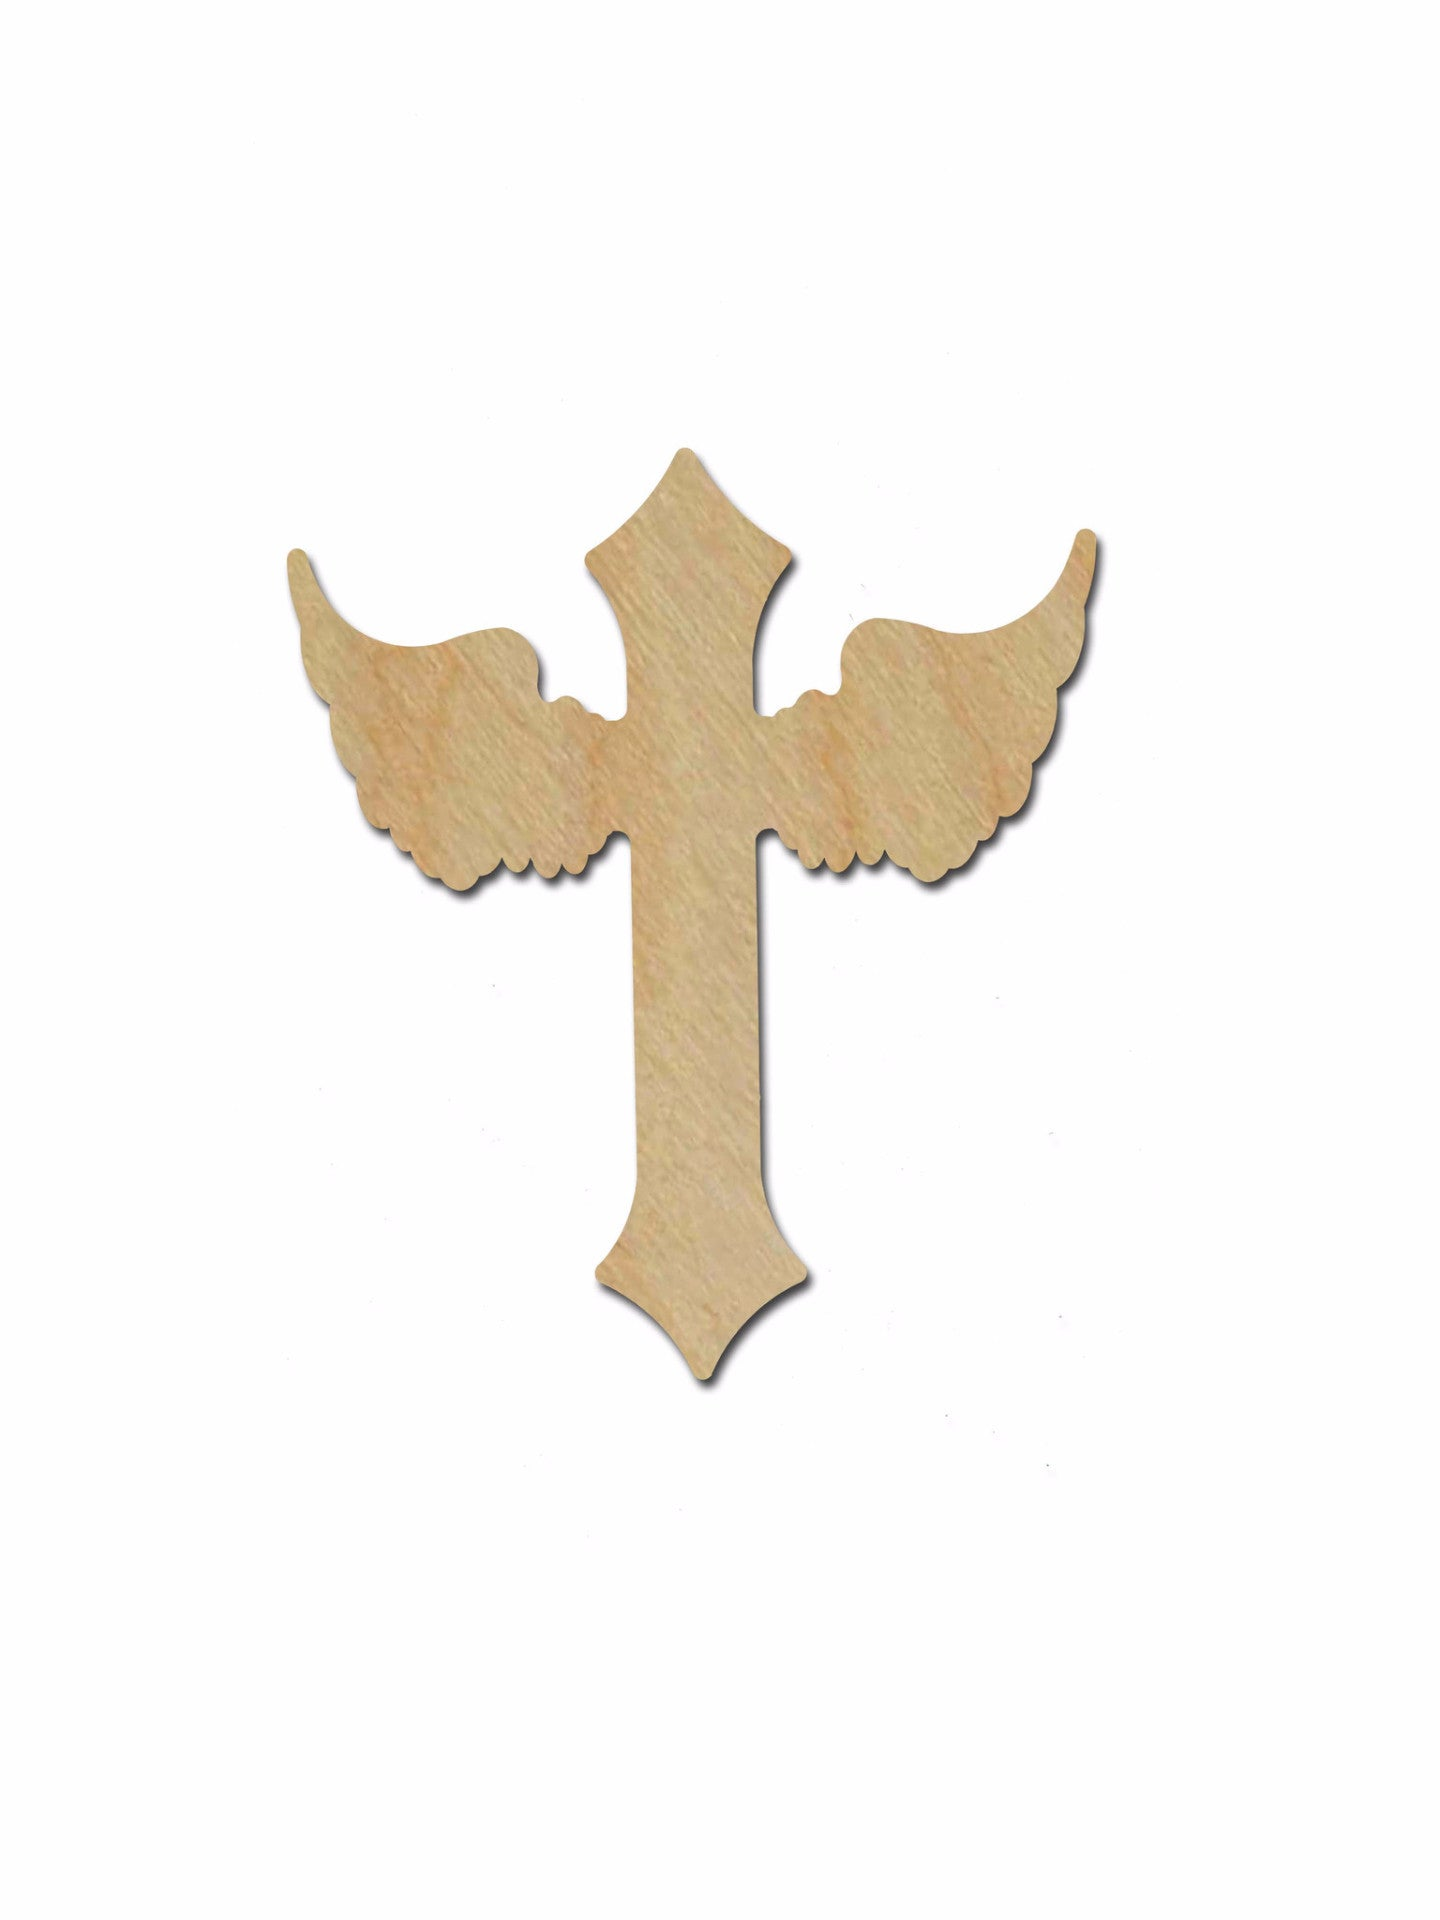 Unfinished Wood Cross Angel Wing Craft Crosses C126 Artistic Craft